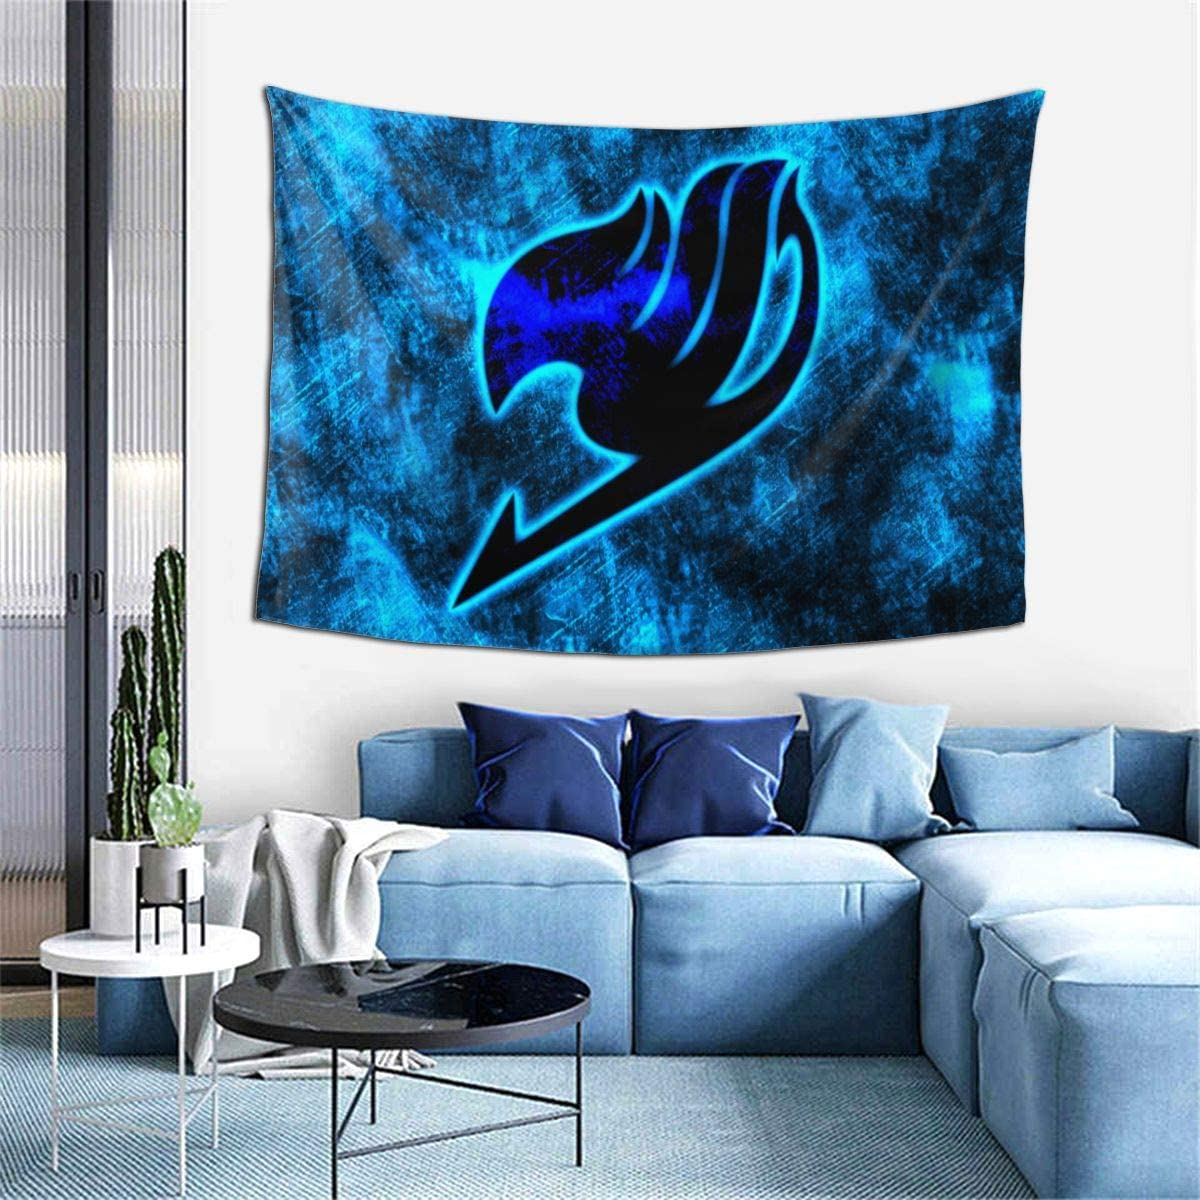 JAIDEN BEATA Dazzle Cool Super Soft Does Not Fade Tapestry,Fairy Tail Blue Bird 3D Printing Cartoon Fashion Hippie Bohemian Psychedelic Creative Art Wall Hanging Home Decor